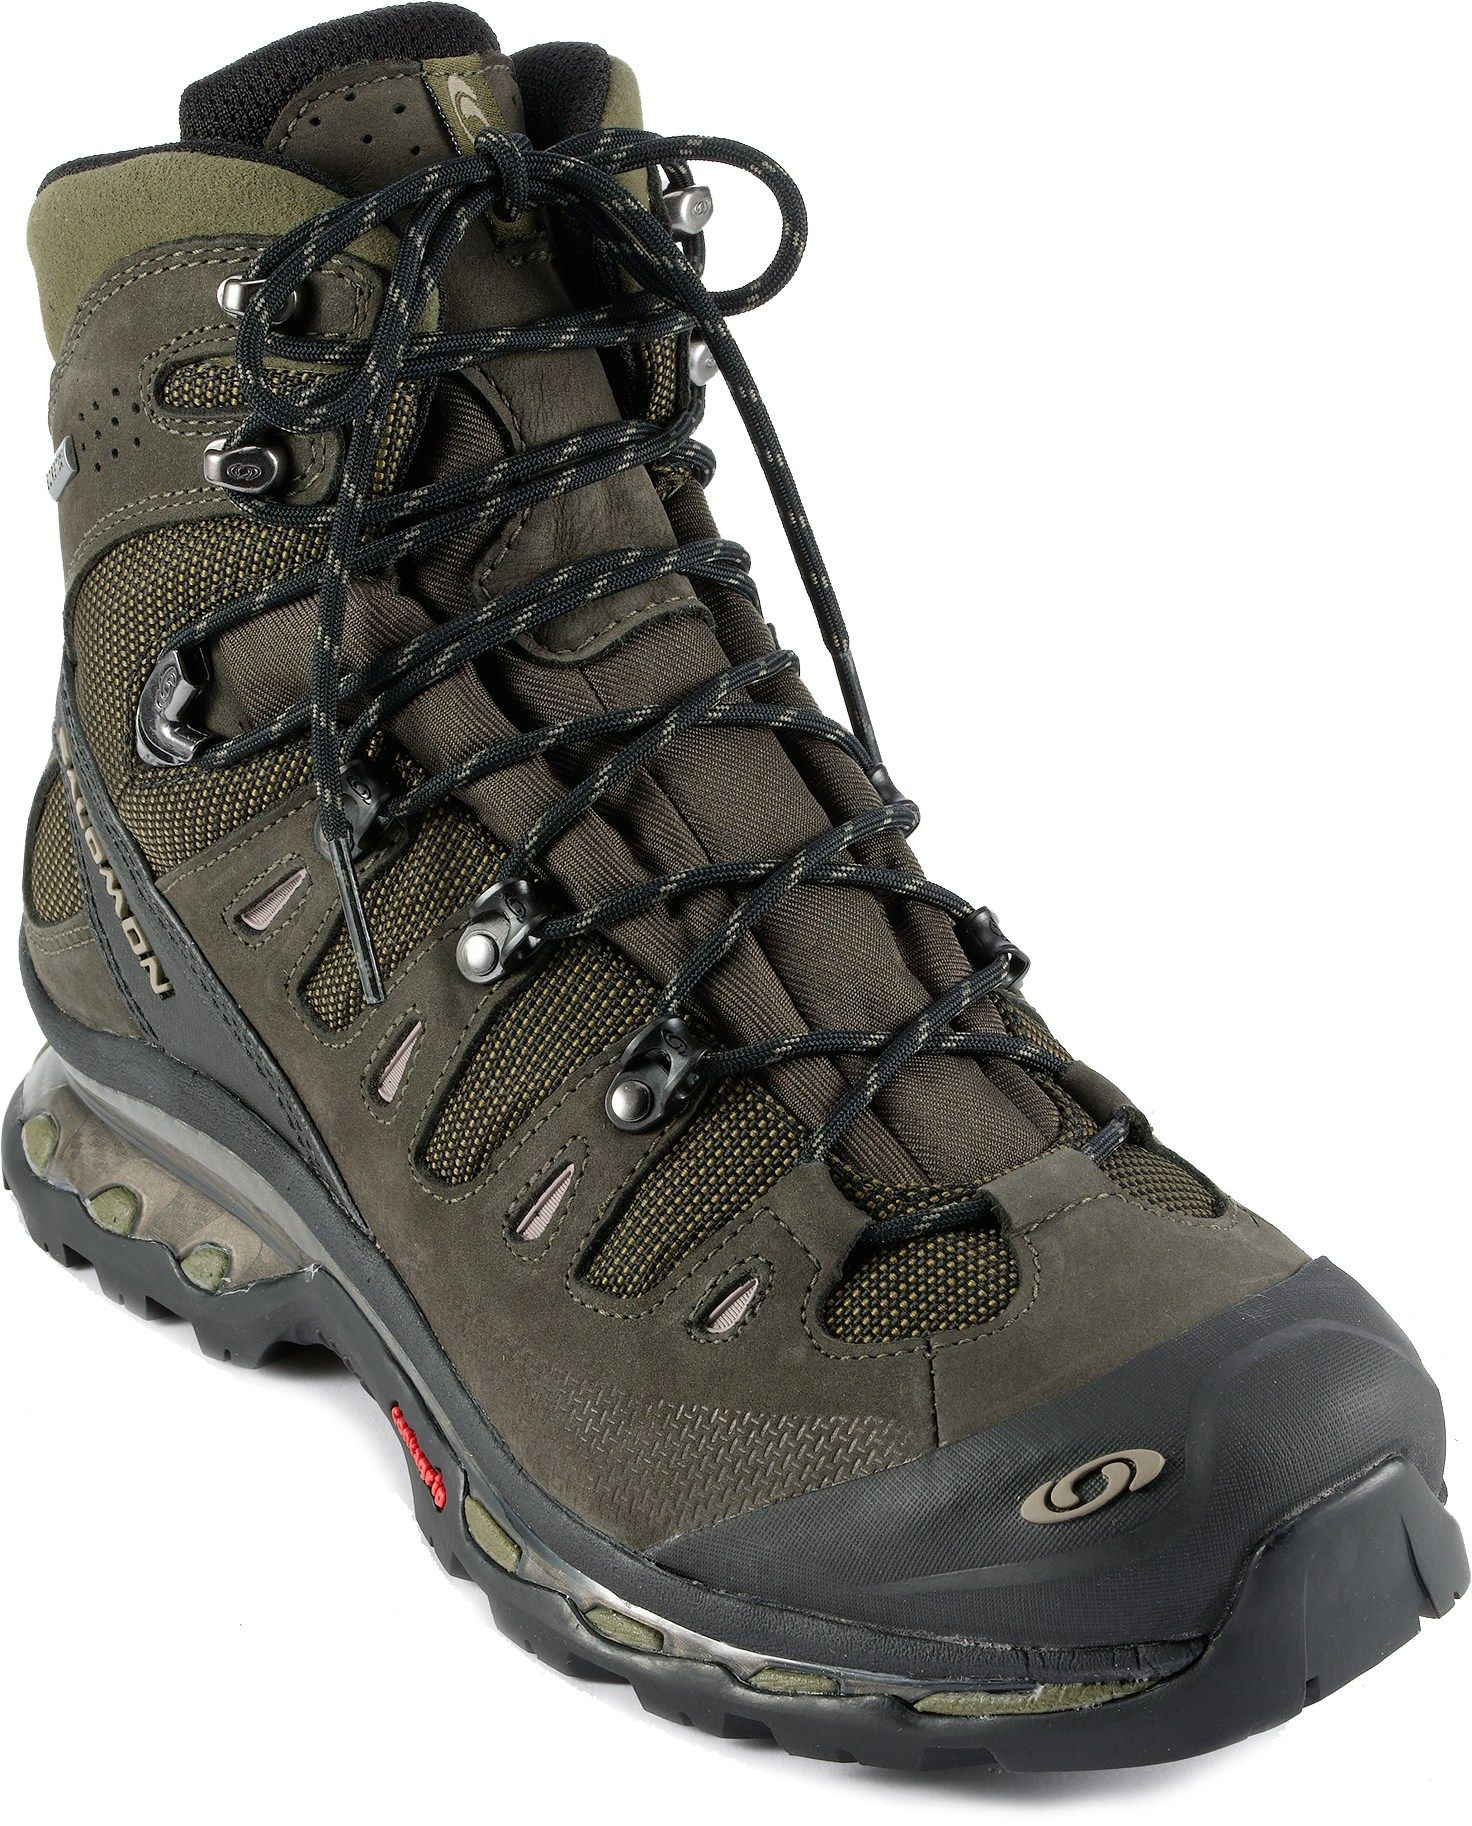 fb85fbb84214 Salomon Quest 4D GTX Hiking Boots - Men s - Free Shipping at REI.com